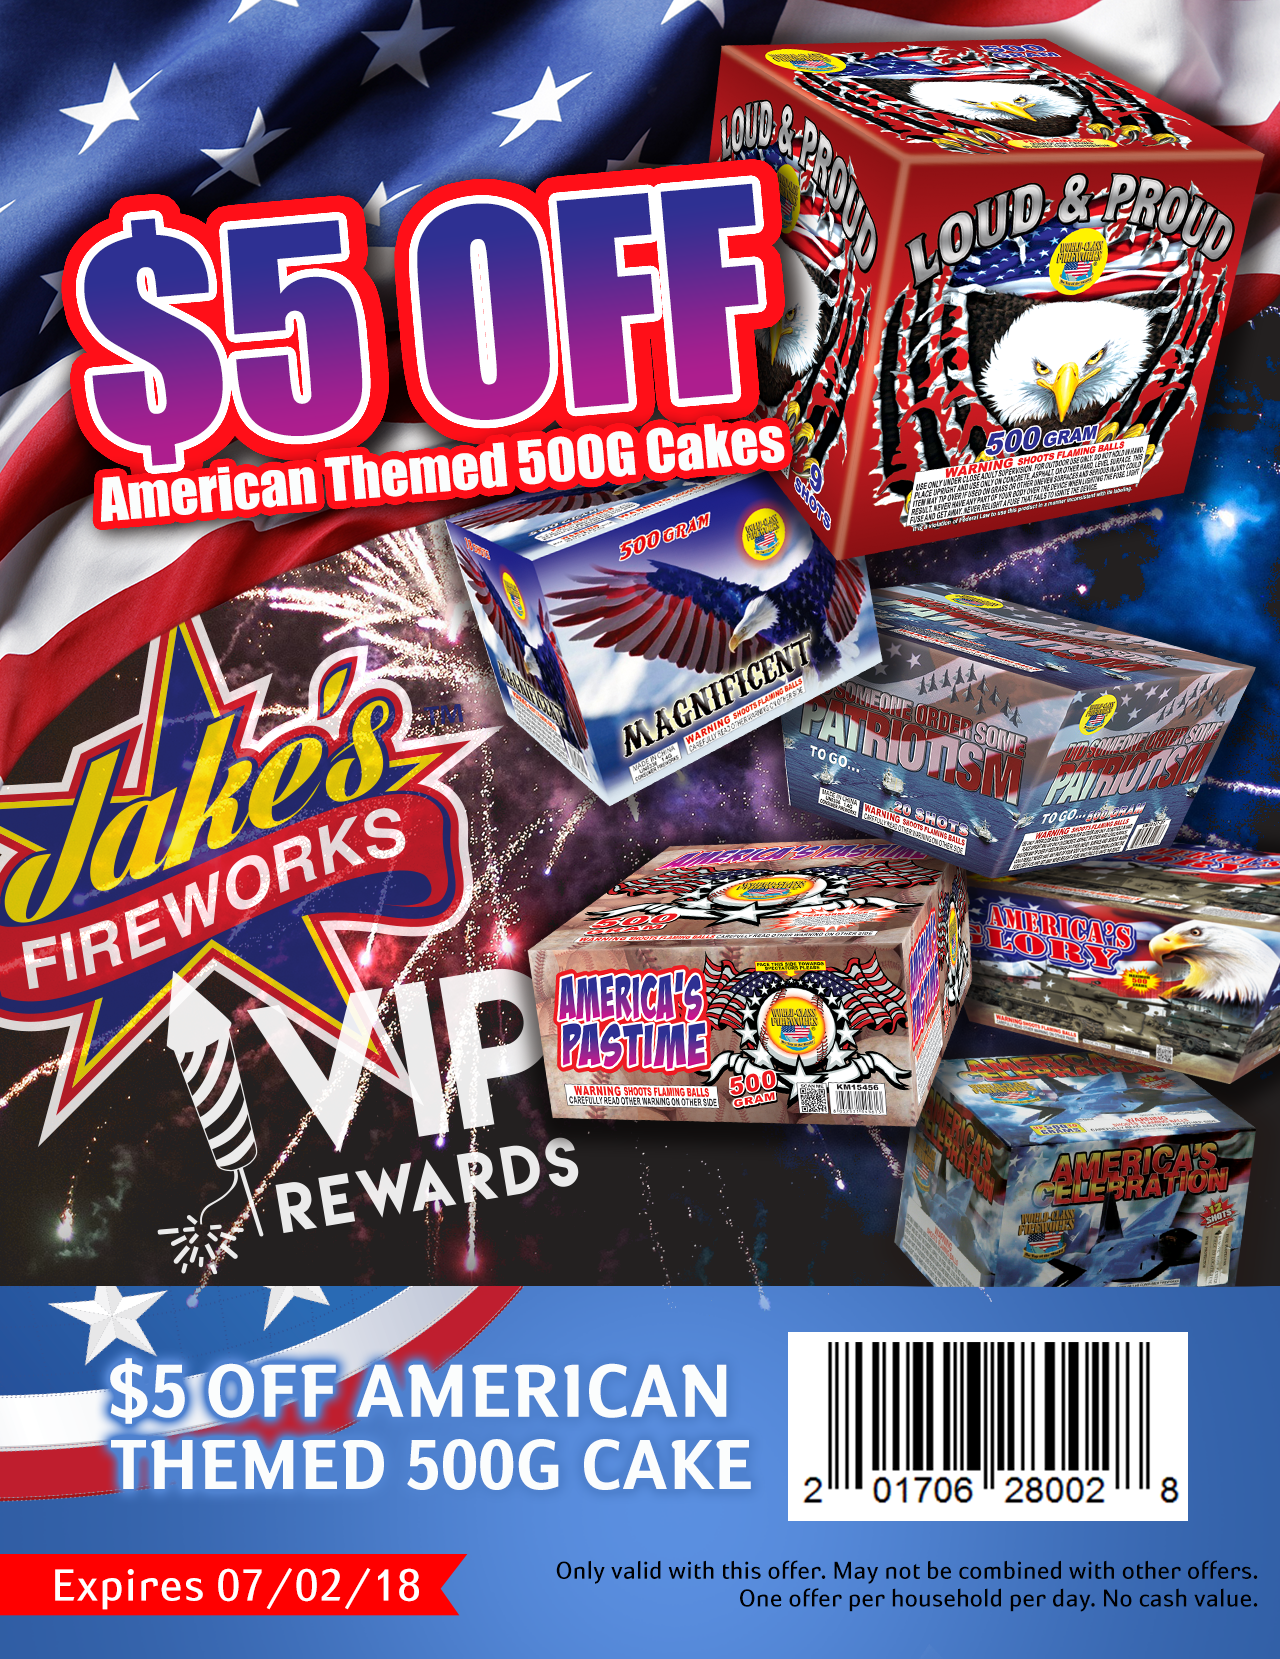 JF_AmericanThemed500G-Graphic-1